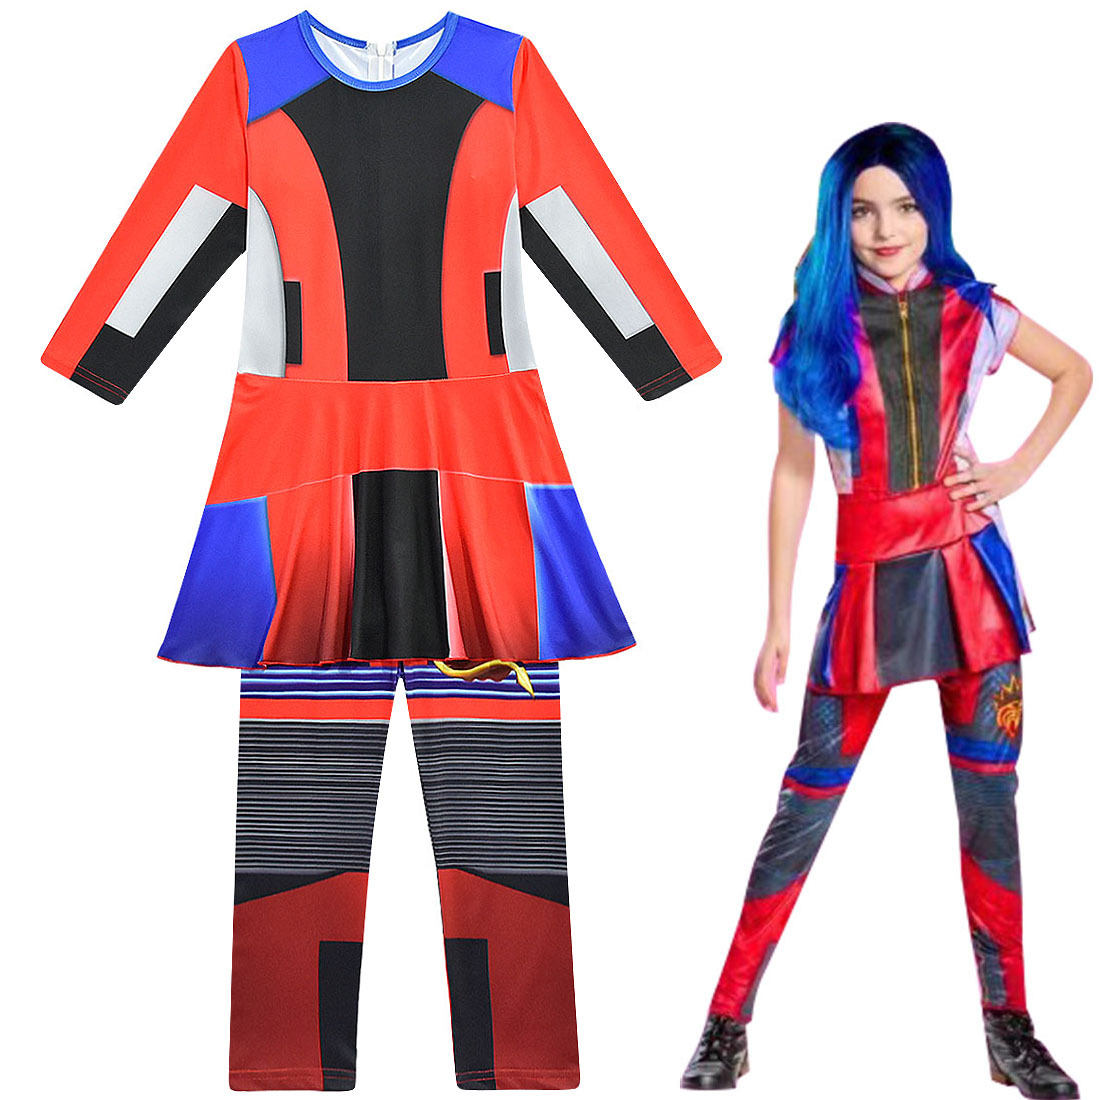 Halloween Costumes For Girls Vocaloid Cosplay Descendants 3 Evie Mal Audrey Kids Jumpsuits Zentai Funny Carnival Party Clothes